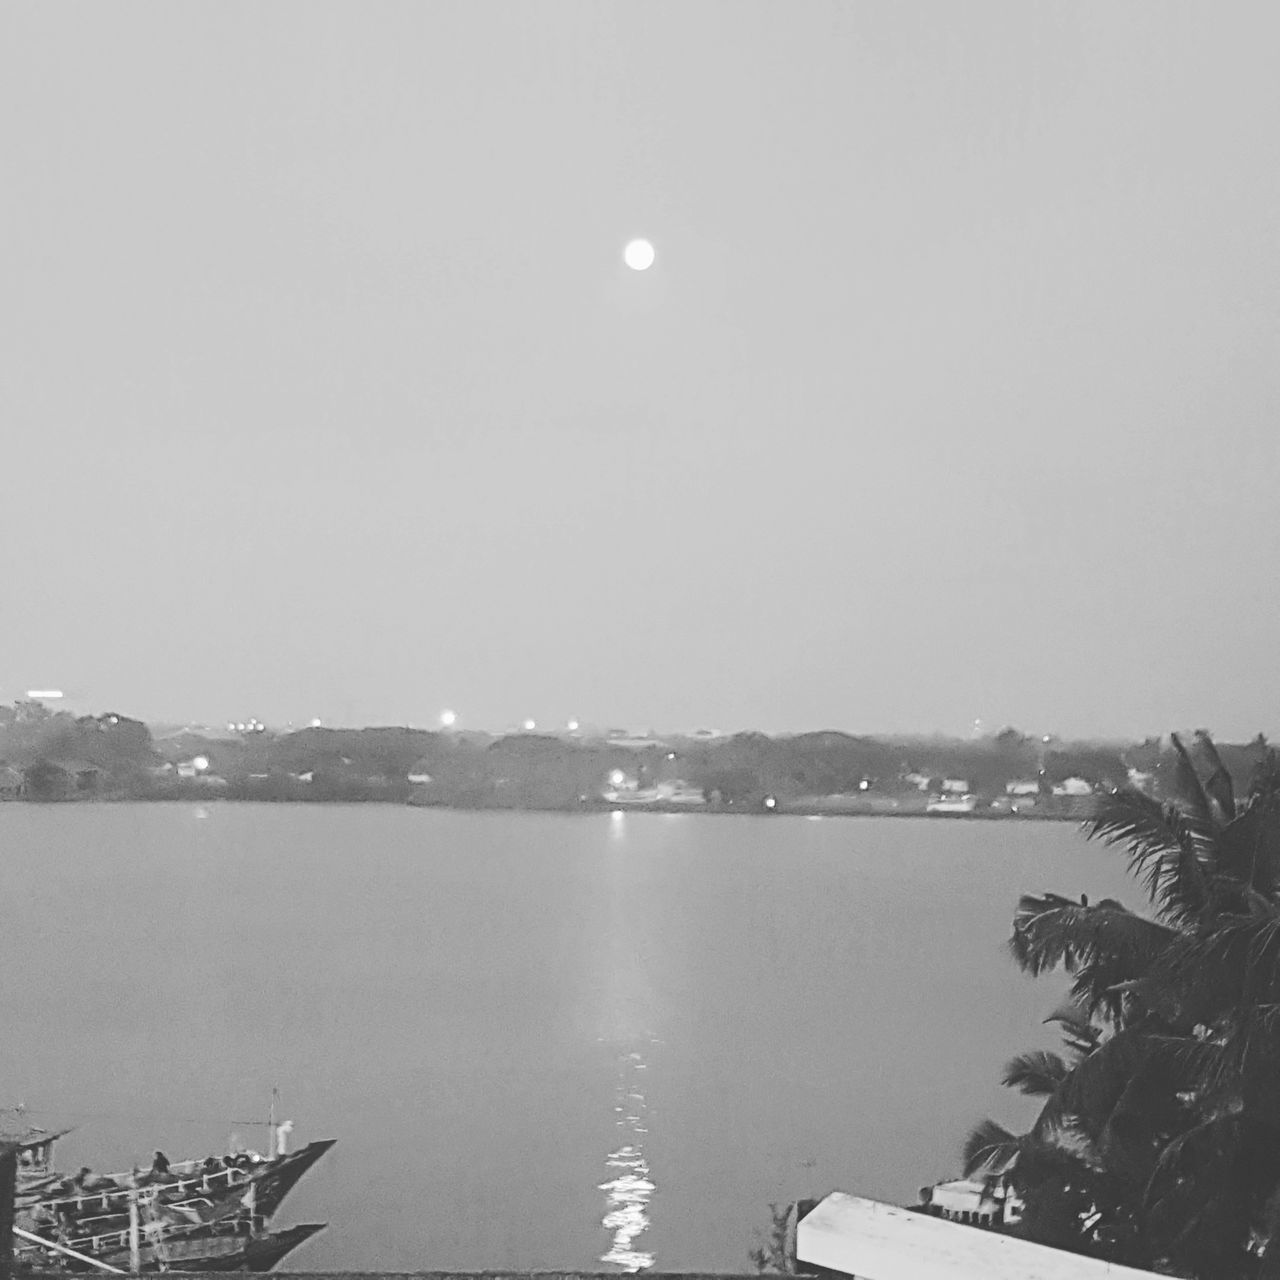 Full Moon Sea Outdoors Night Vision Black & White